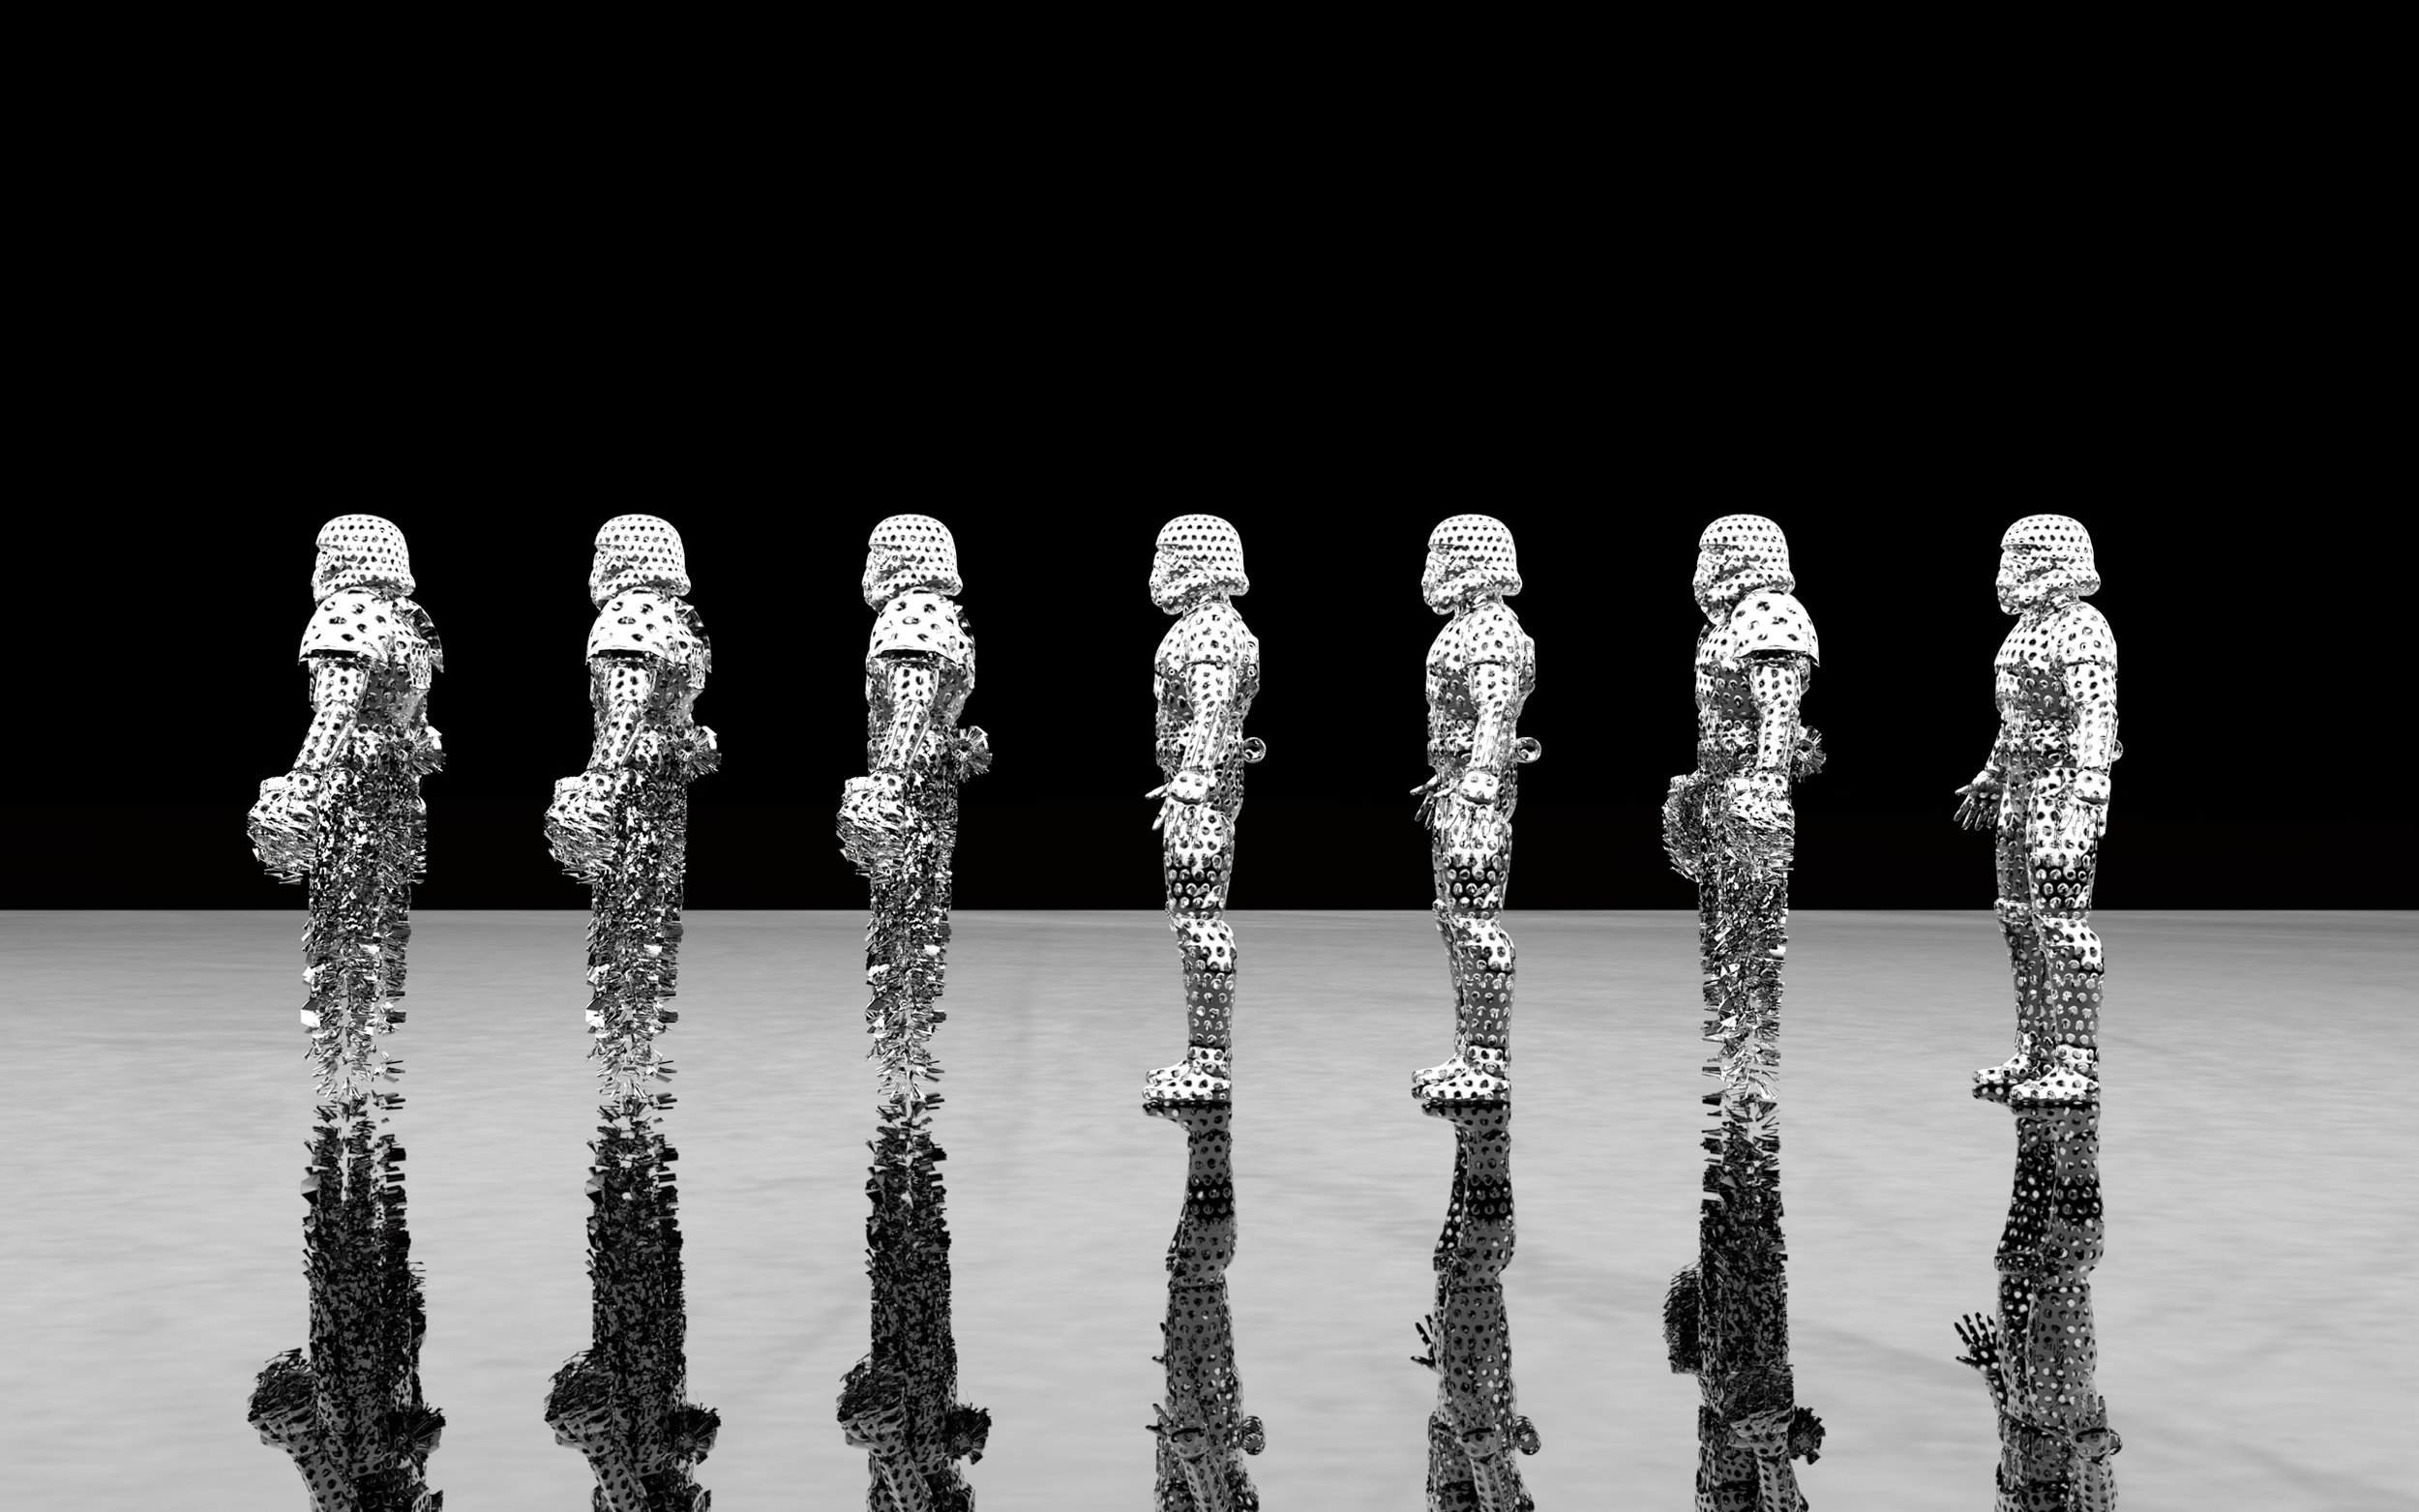 stormtrooper_reflect 02.jpg